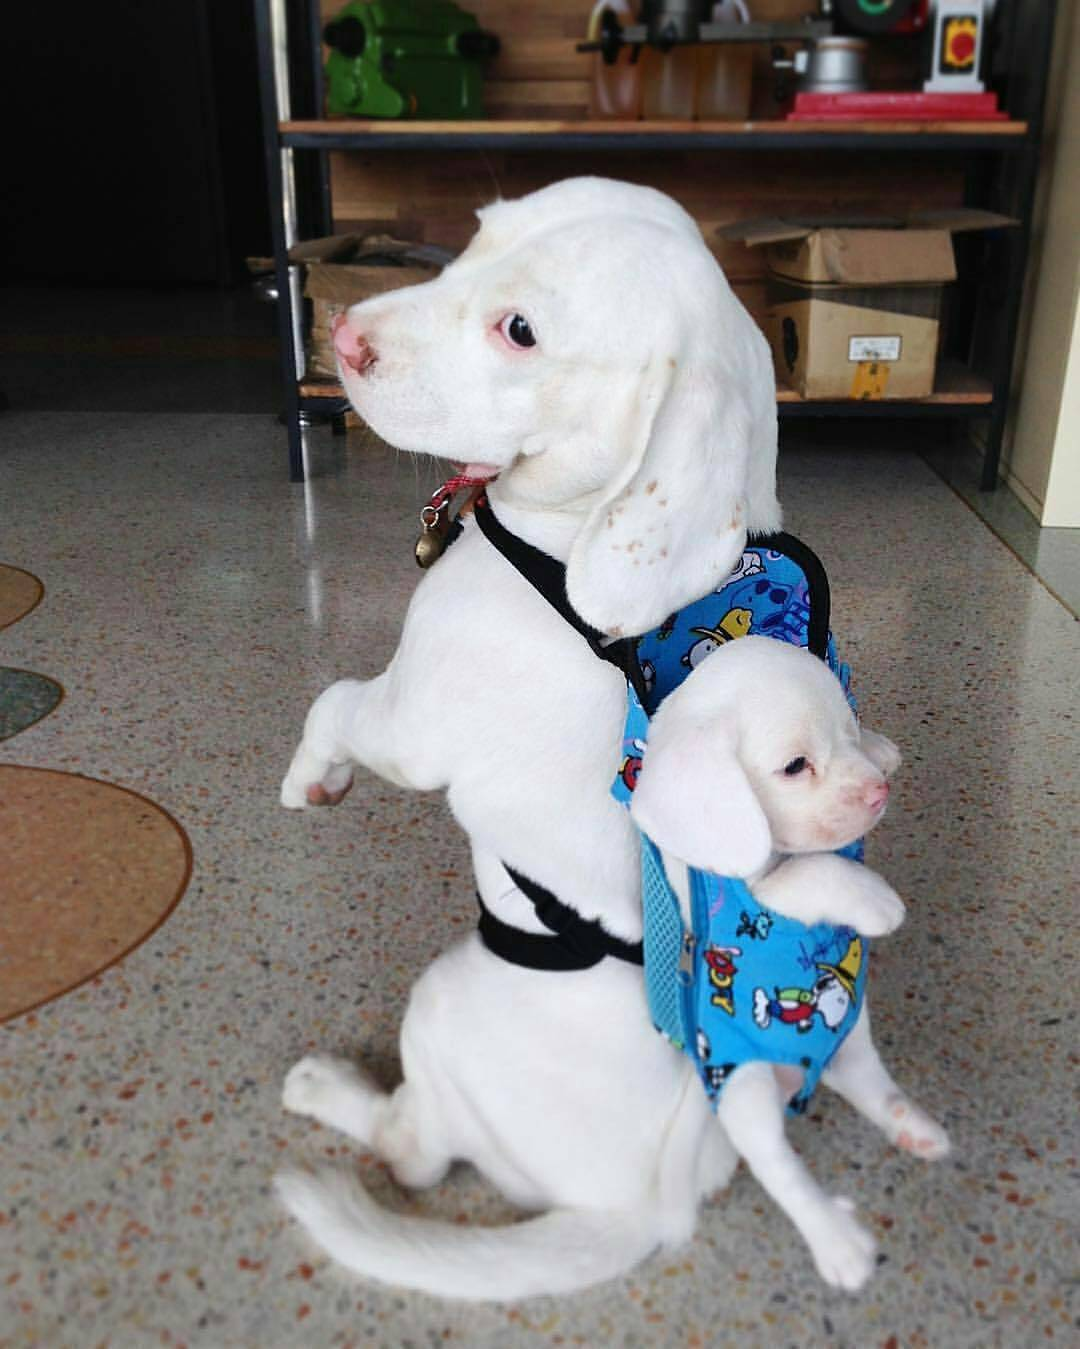 Cute dogs - part 148, cute dog photo, funny dog pictures